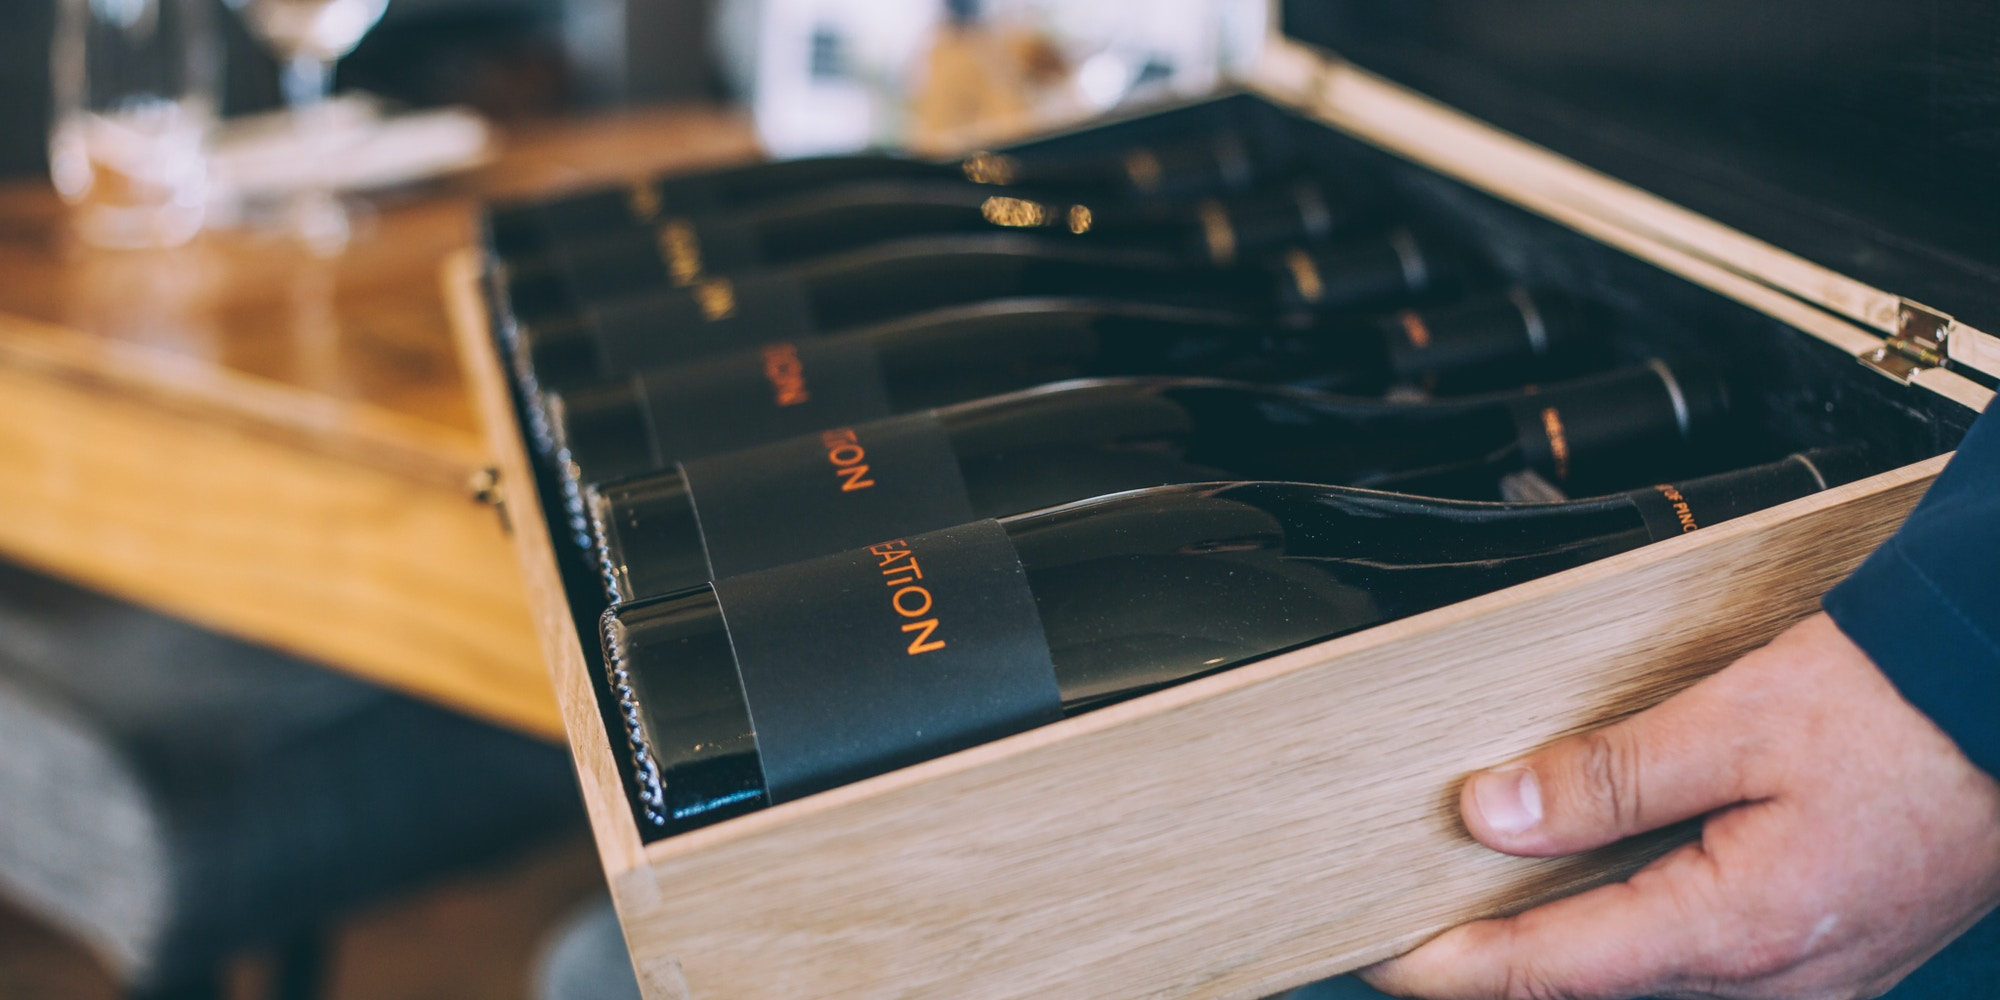 A collection of wine at Creation Wine Estate in Hermanus Image credit Shawn Ugulu